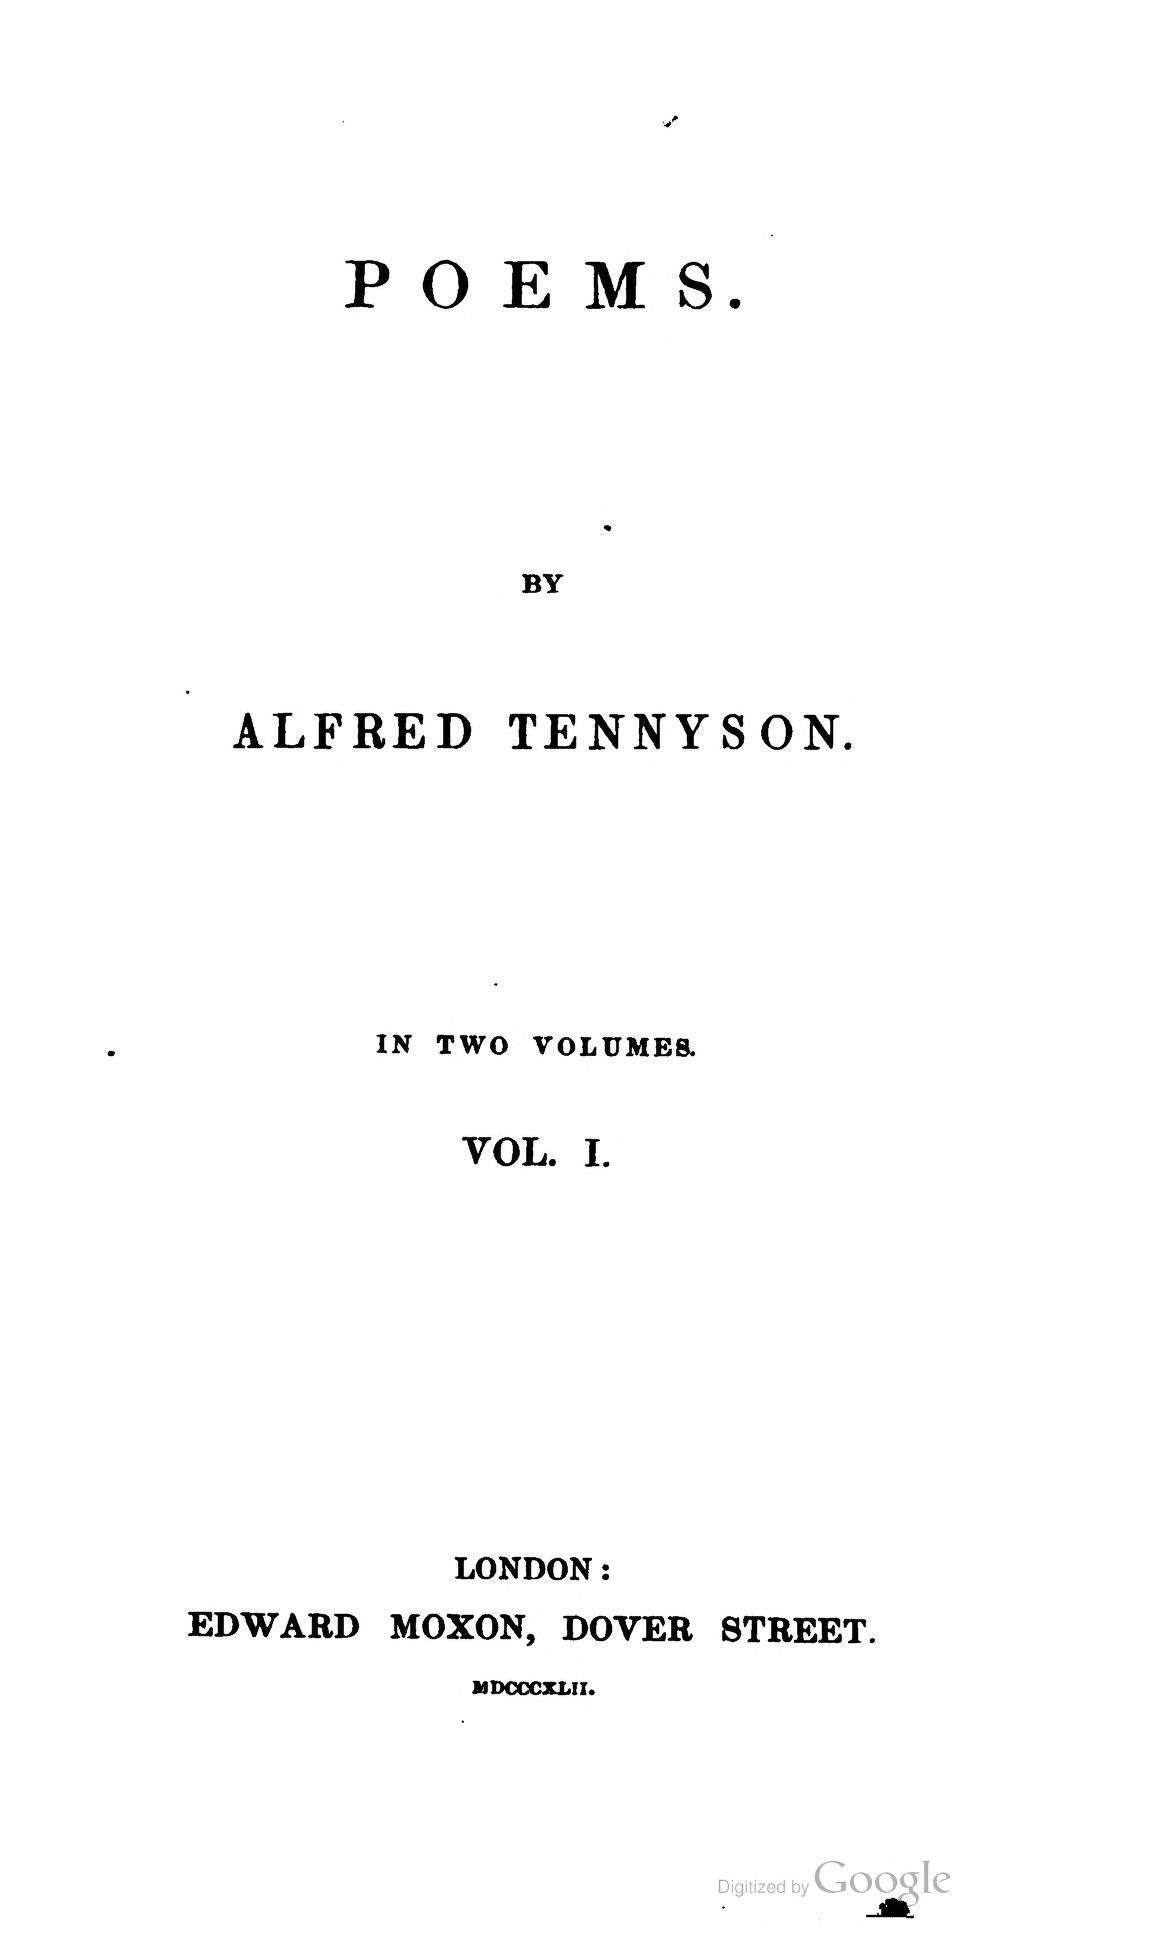 Poems Tennyson 1842 Wikipedia